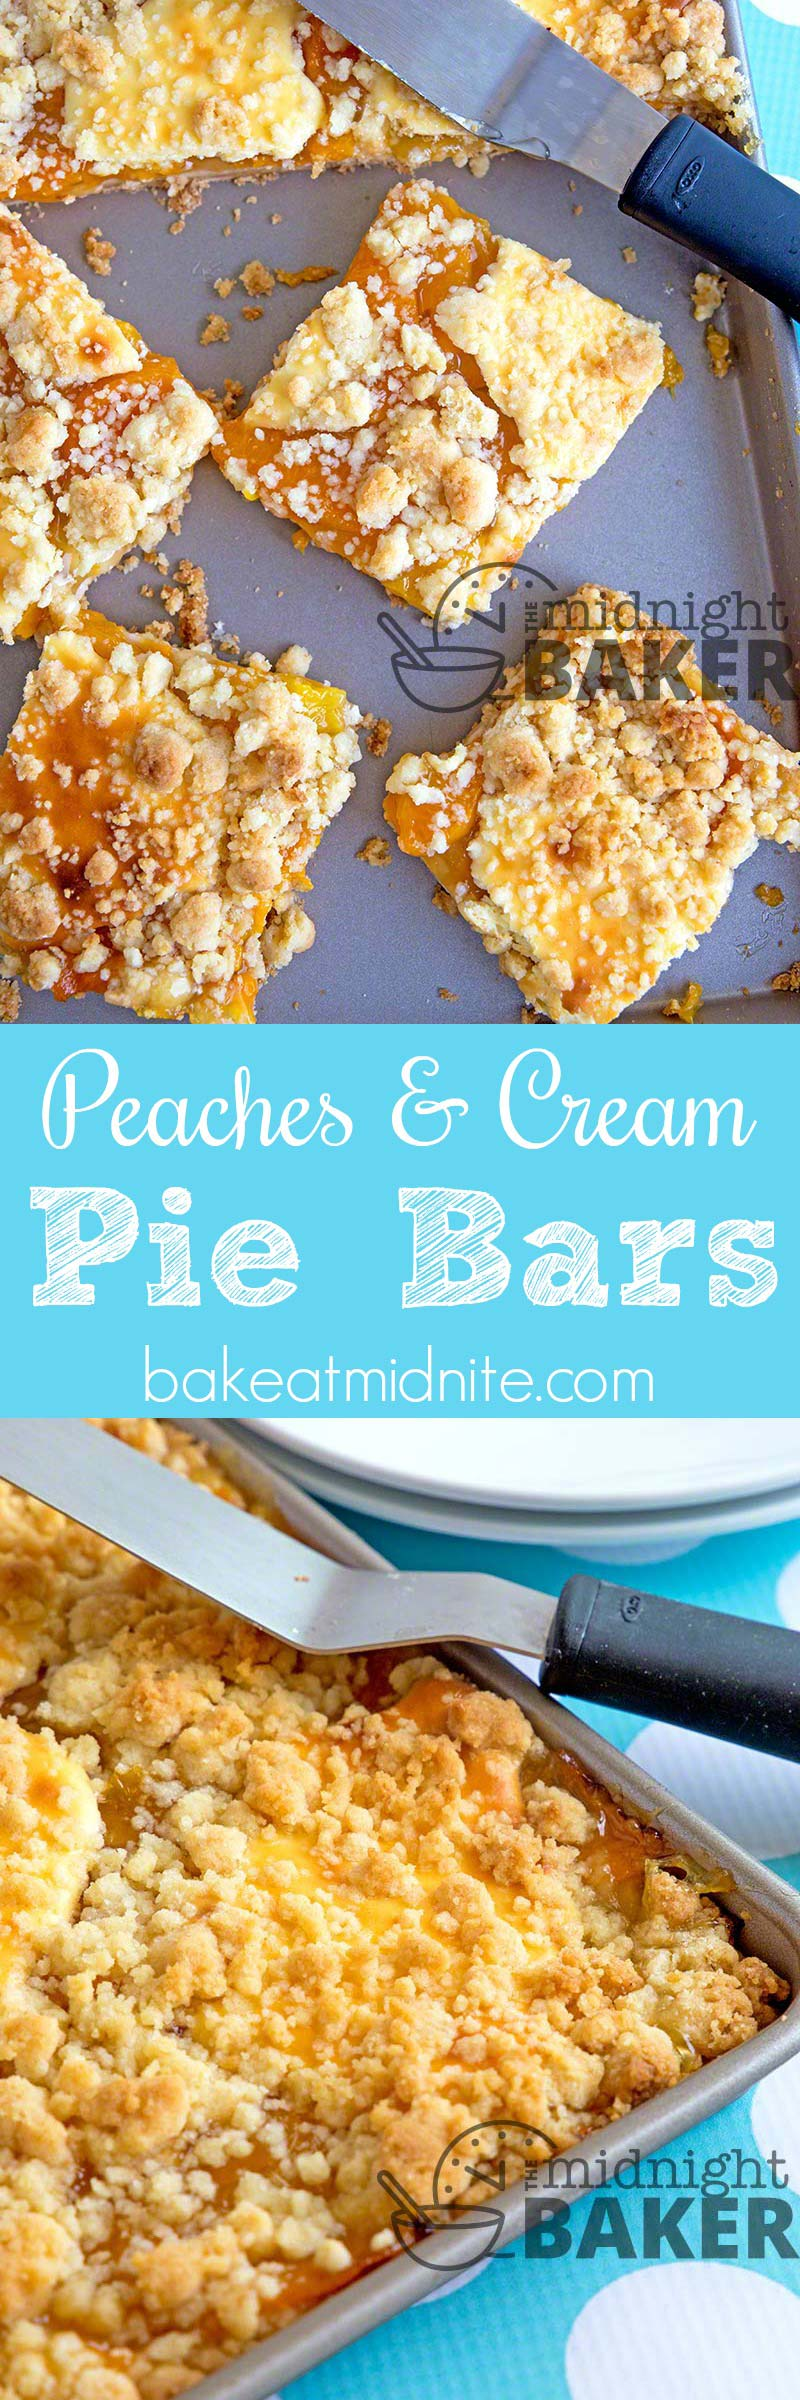 These peach pie bars have the added accent of cheesecake dolloped on top!